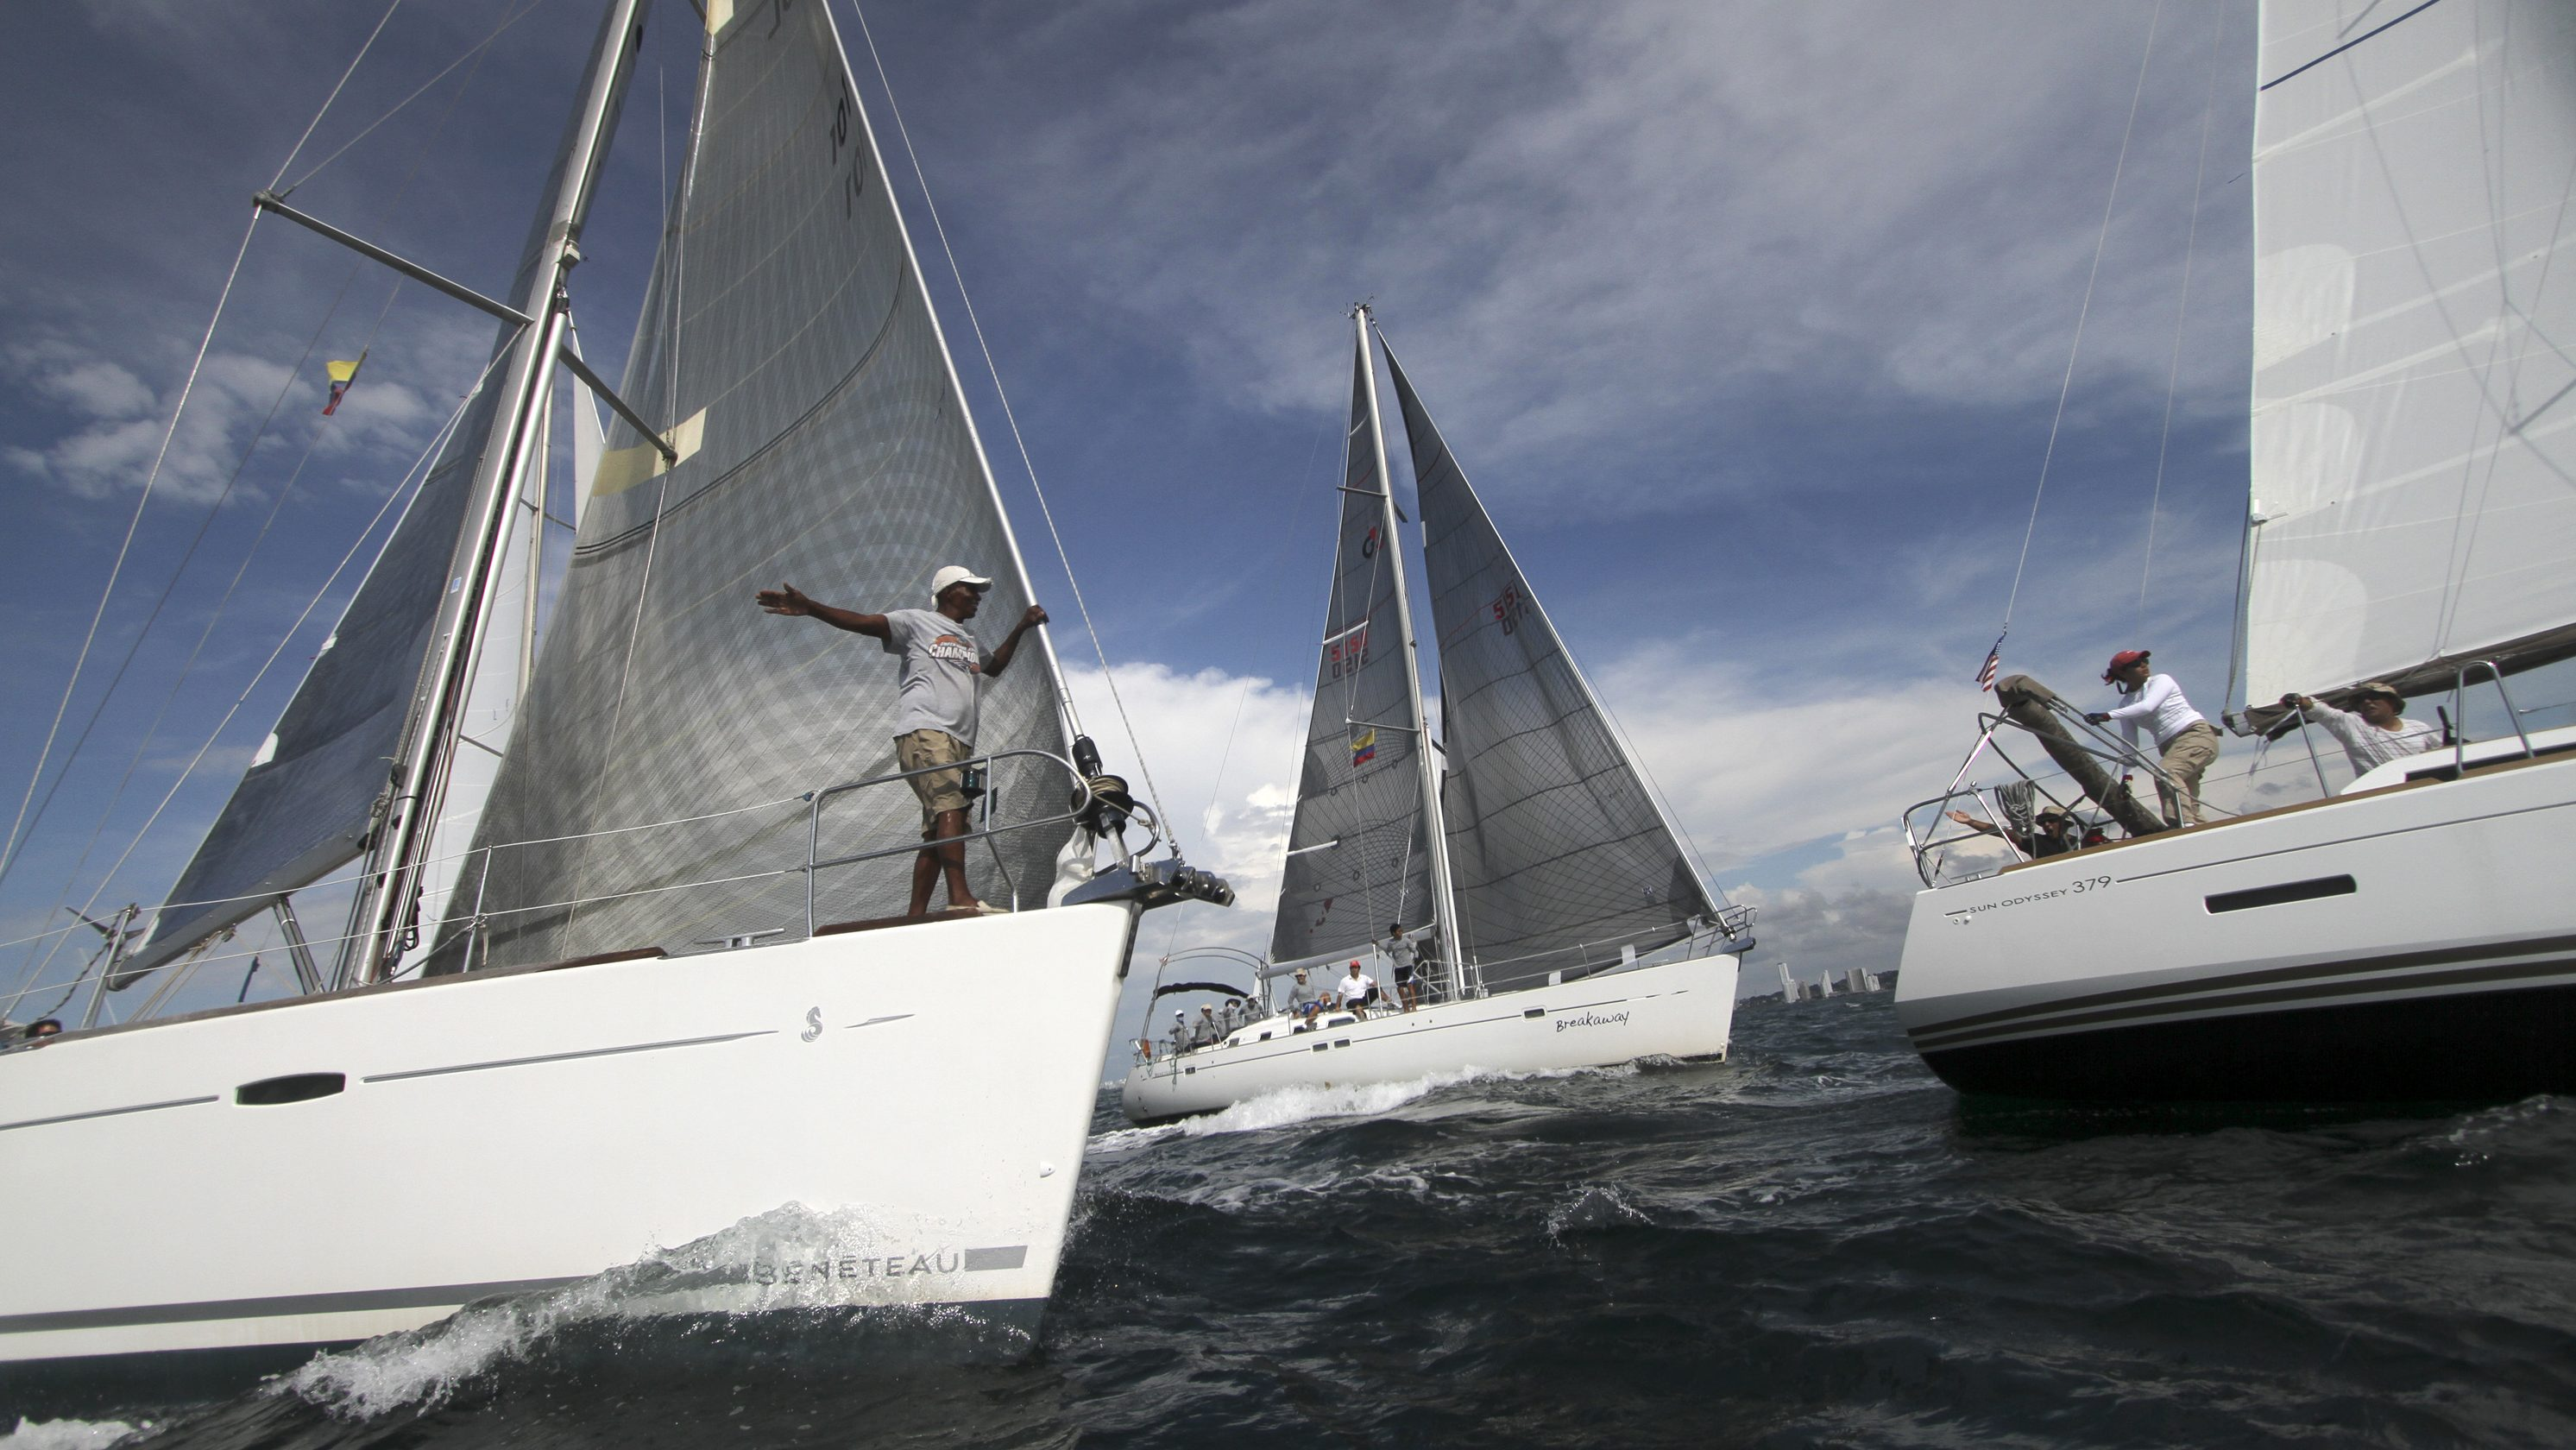 Three sailboats close to one another during a regatta